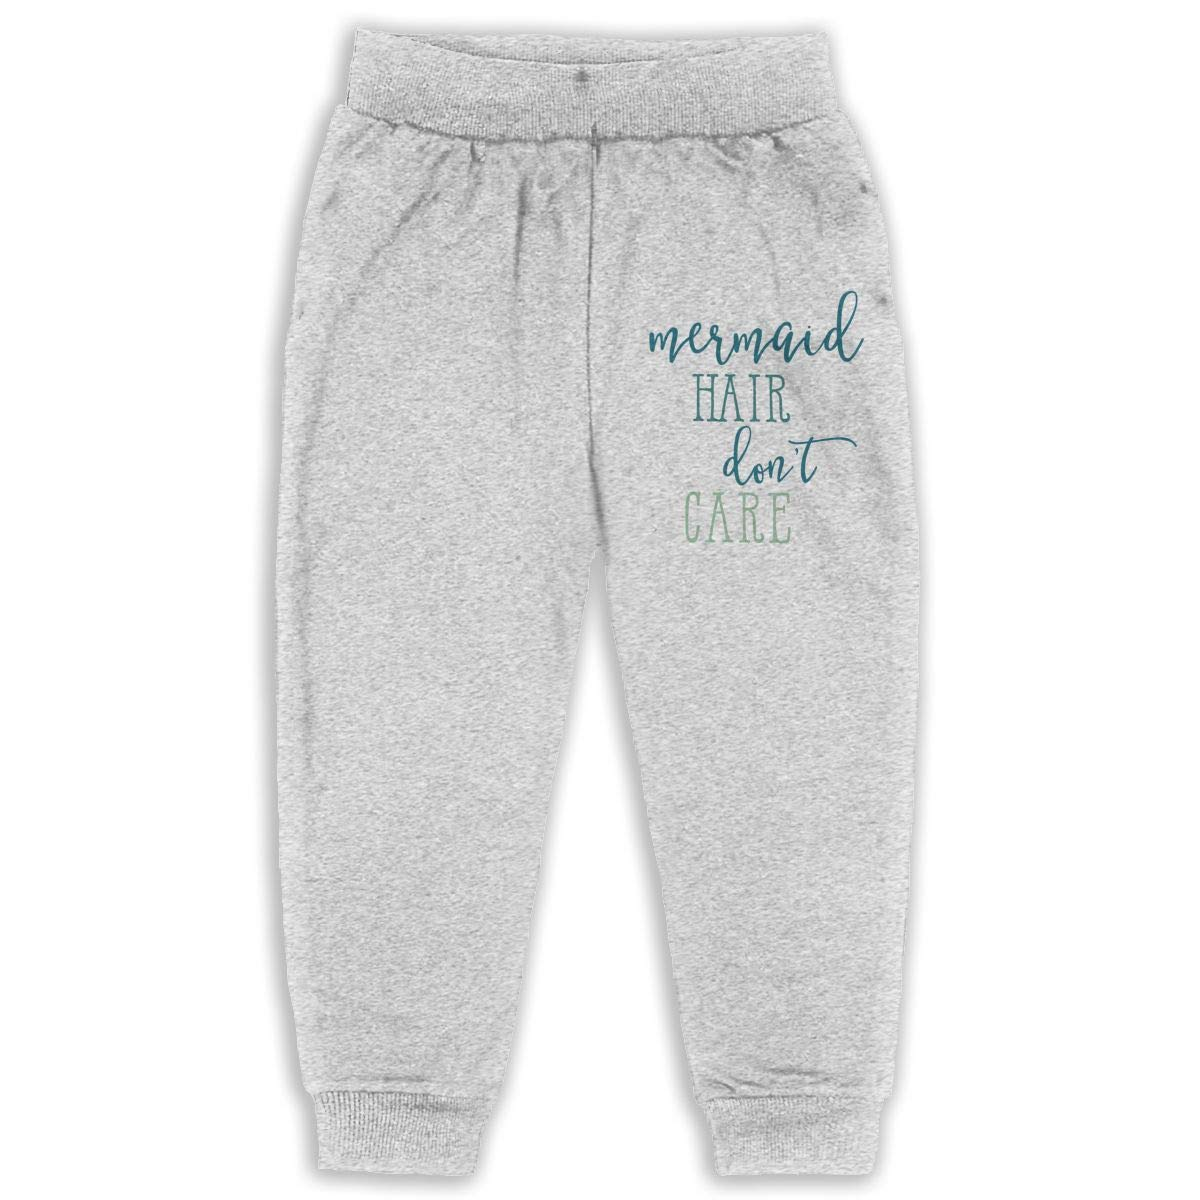 Mermaid Hair Dont Care Kids Cotton Sweatpants,Jogger Long Jersey Sweatpants